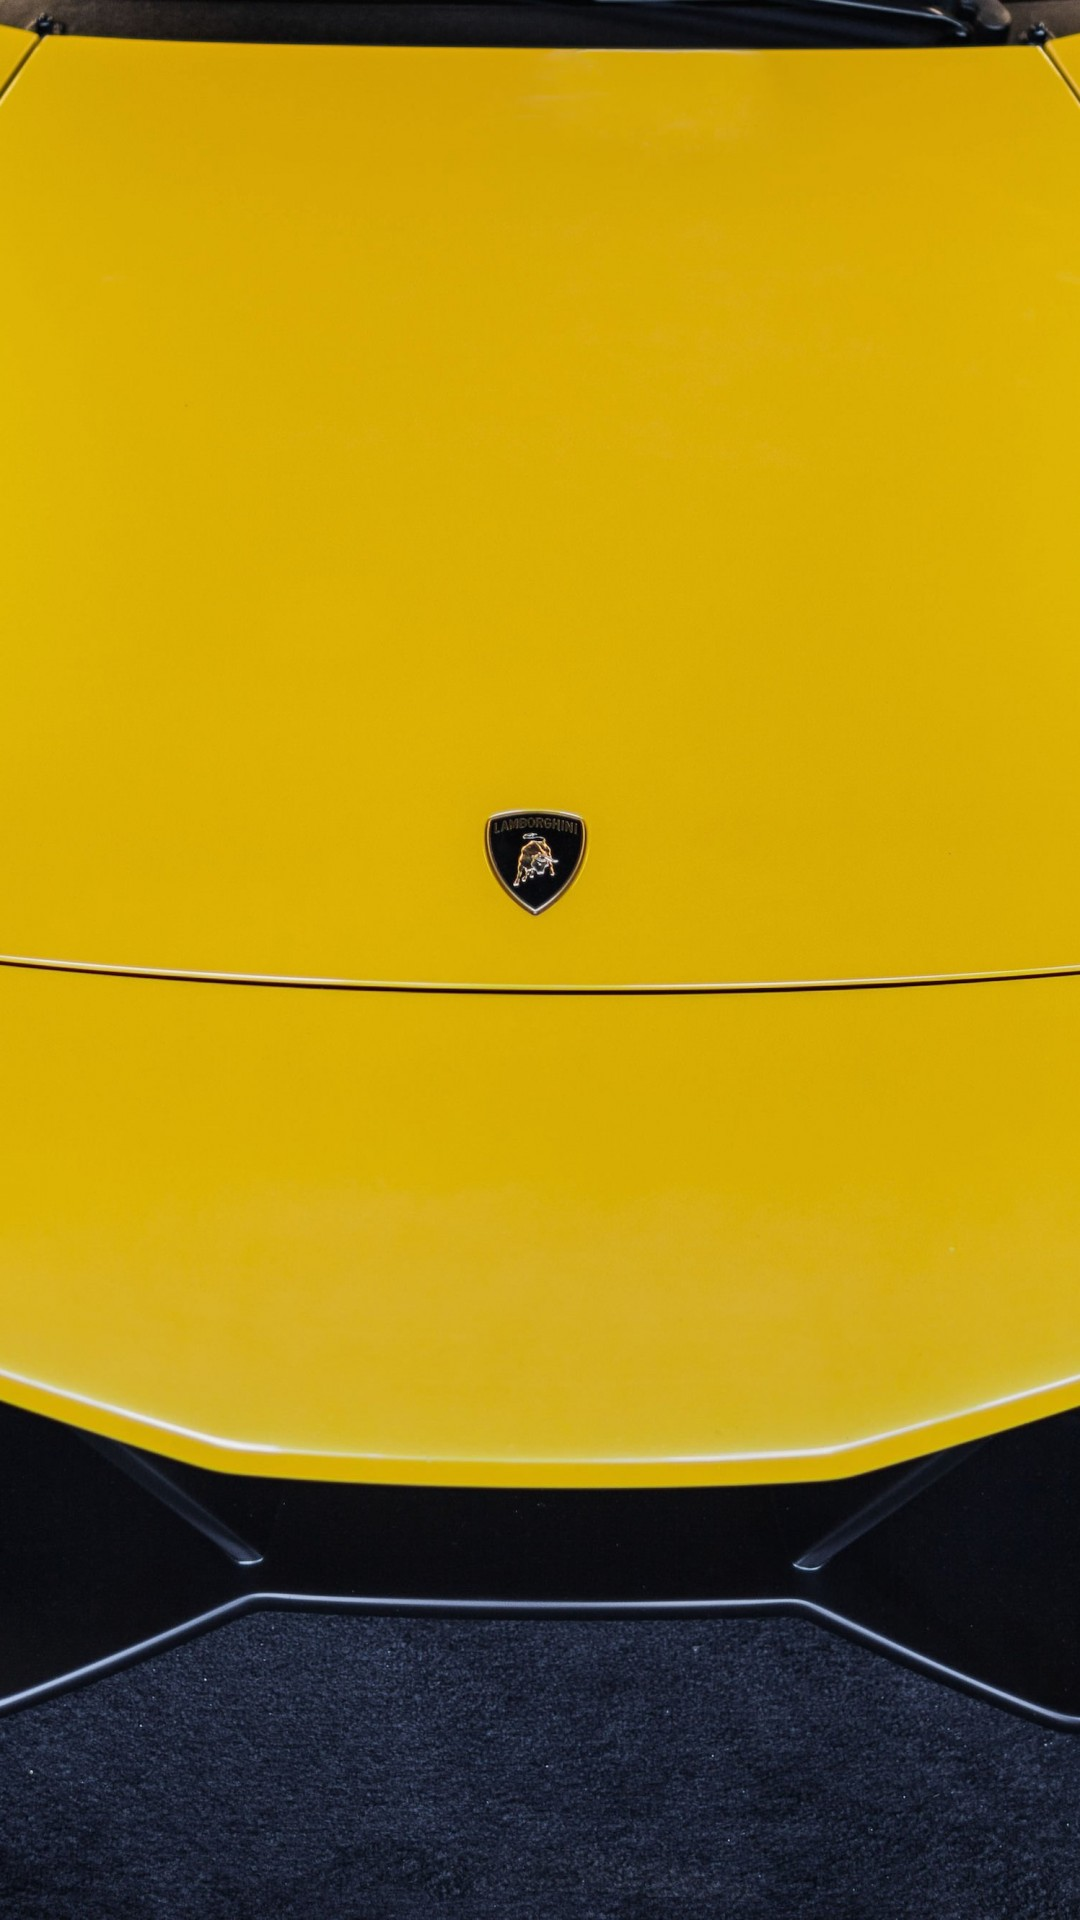 Lamborghini Murcielago LP670 Front Wallpaper for SAMSUNG Galaxy S5